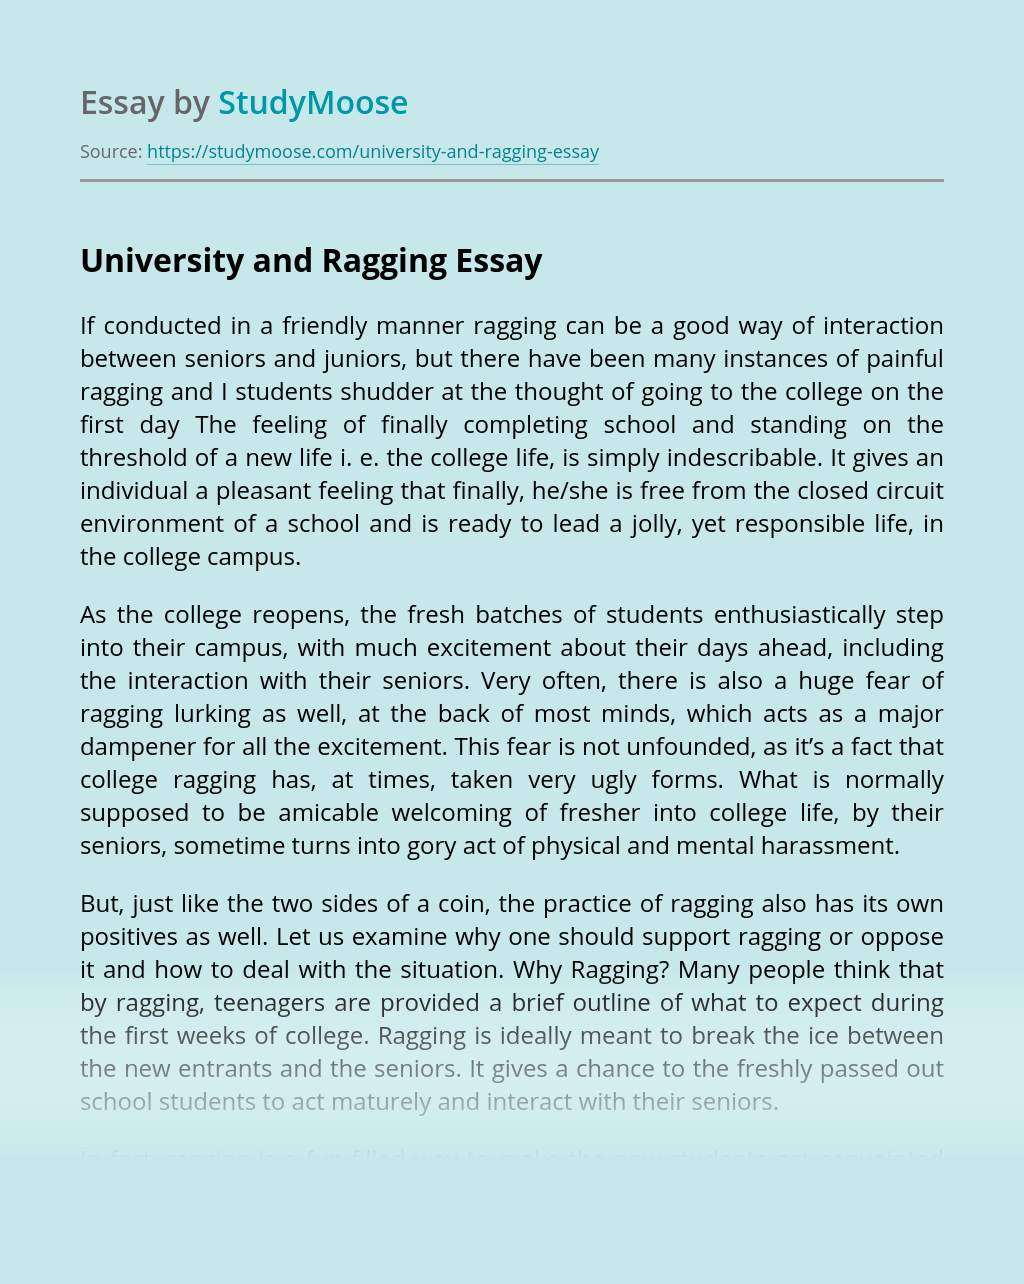 University and Ragging